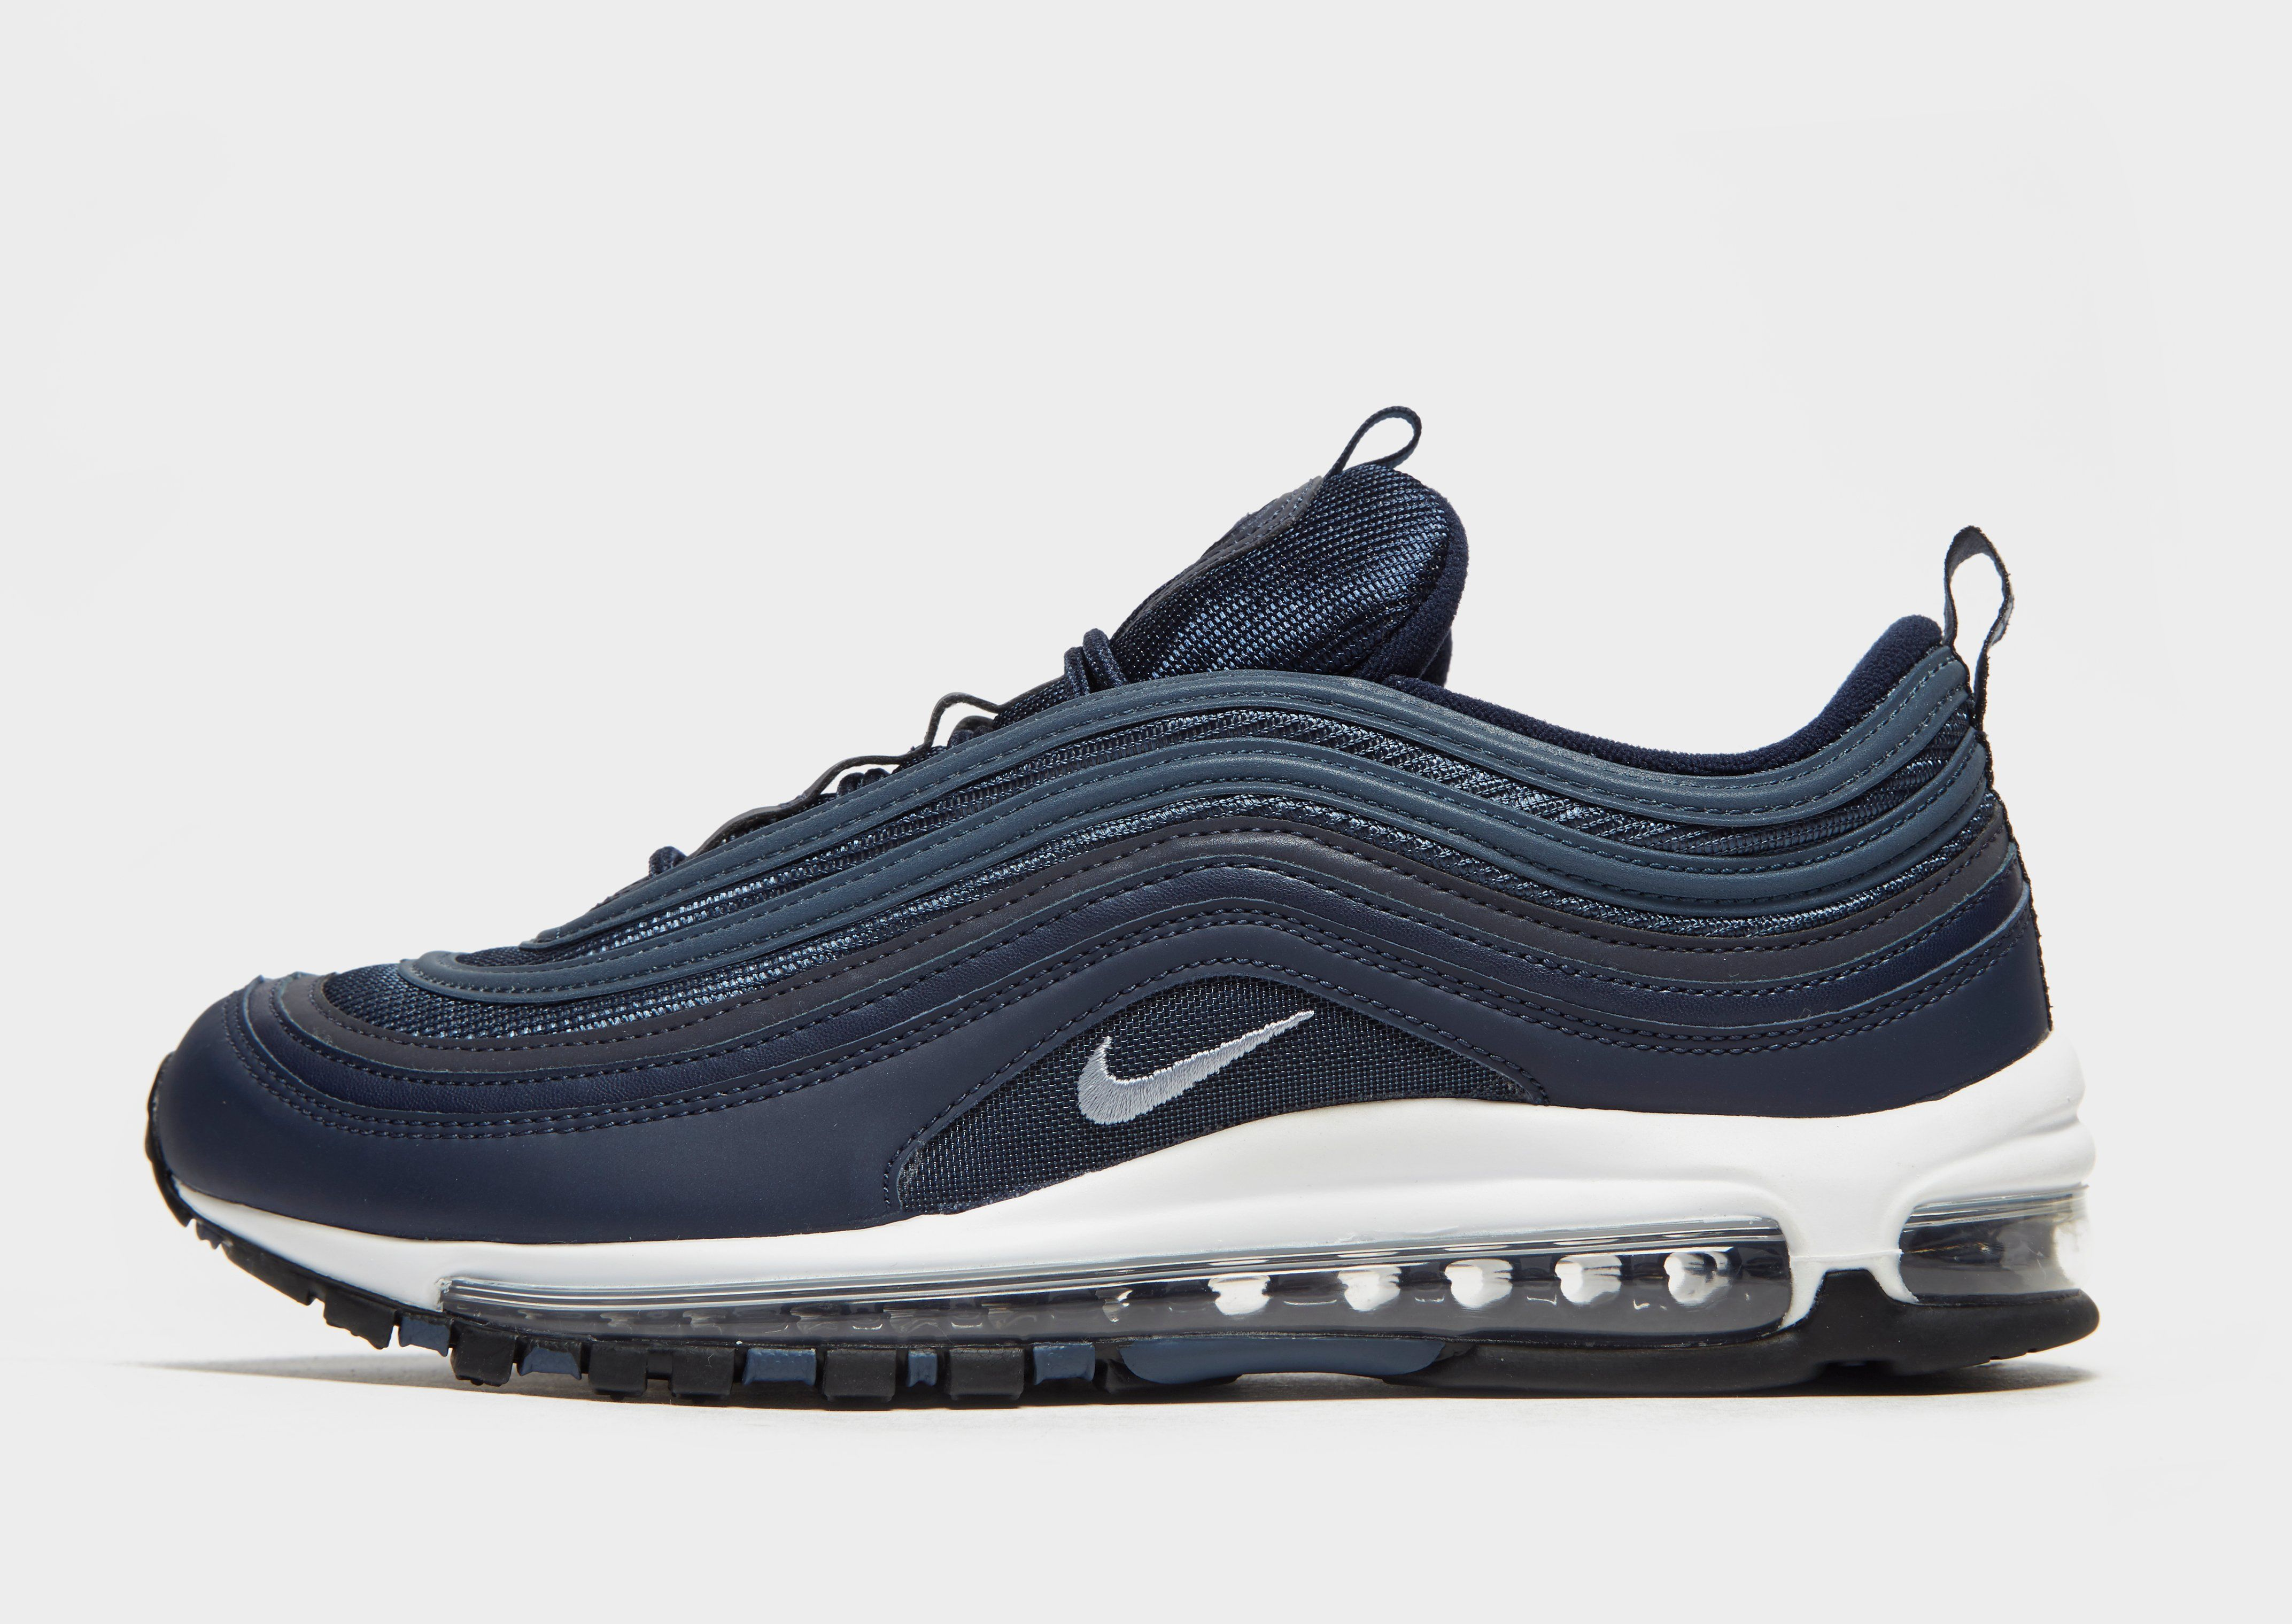 separation shoes 577e3 9e7f6 Nike Air Max 97 | JD Sports Ireland